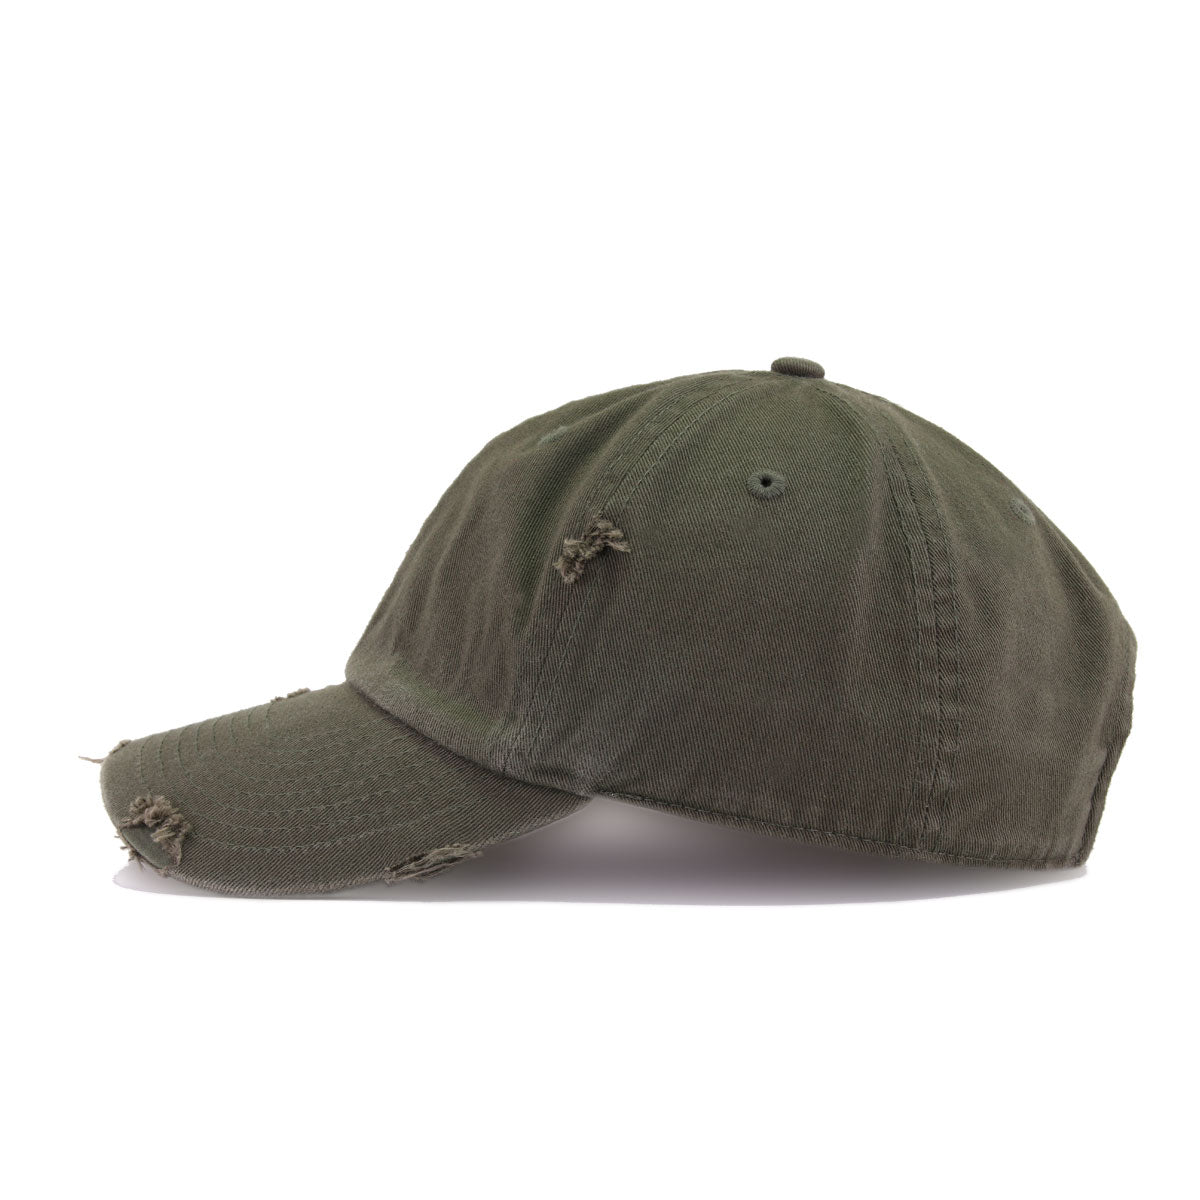 Distressed Olive KBEthos Vintage Dad Hat